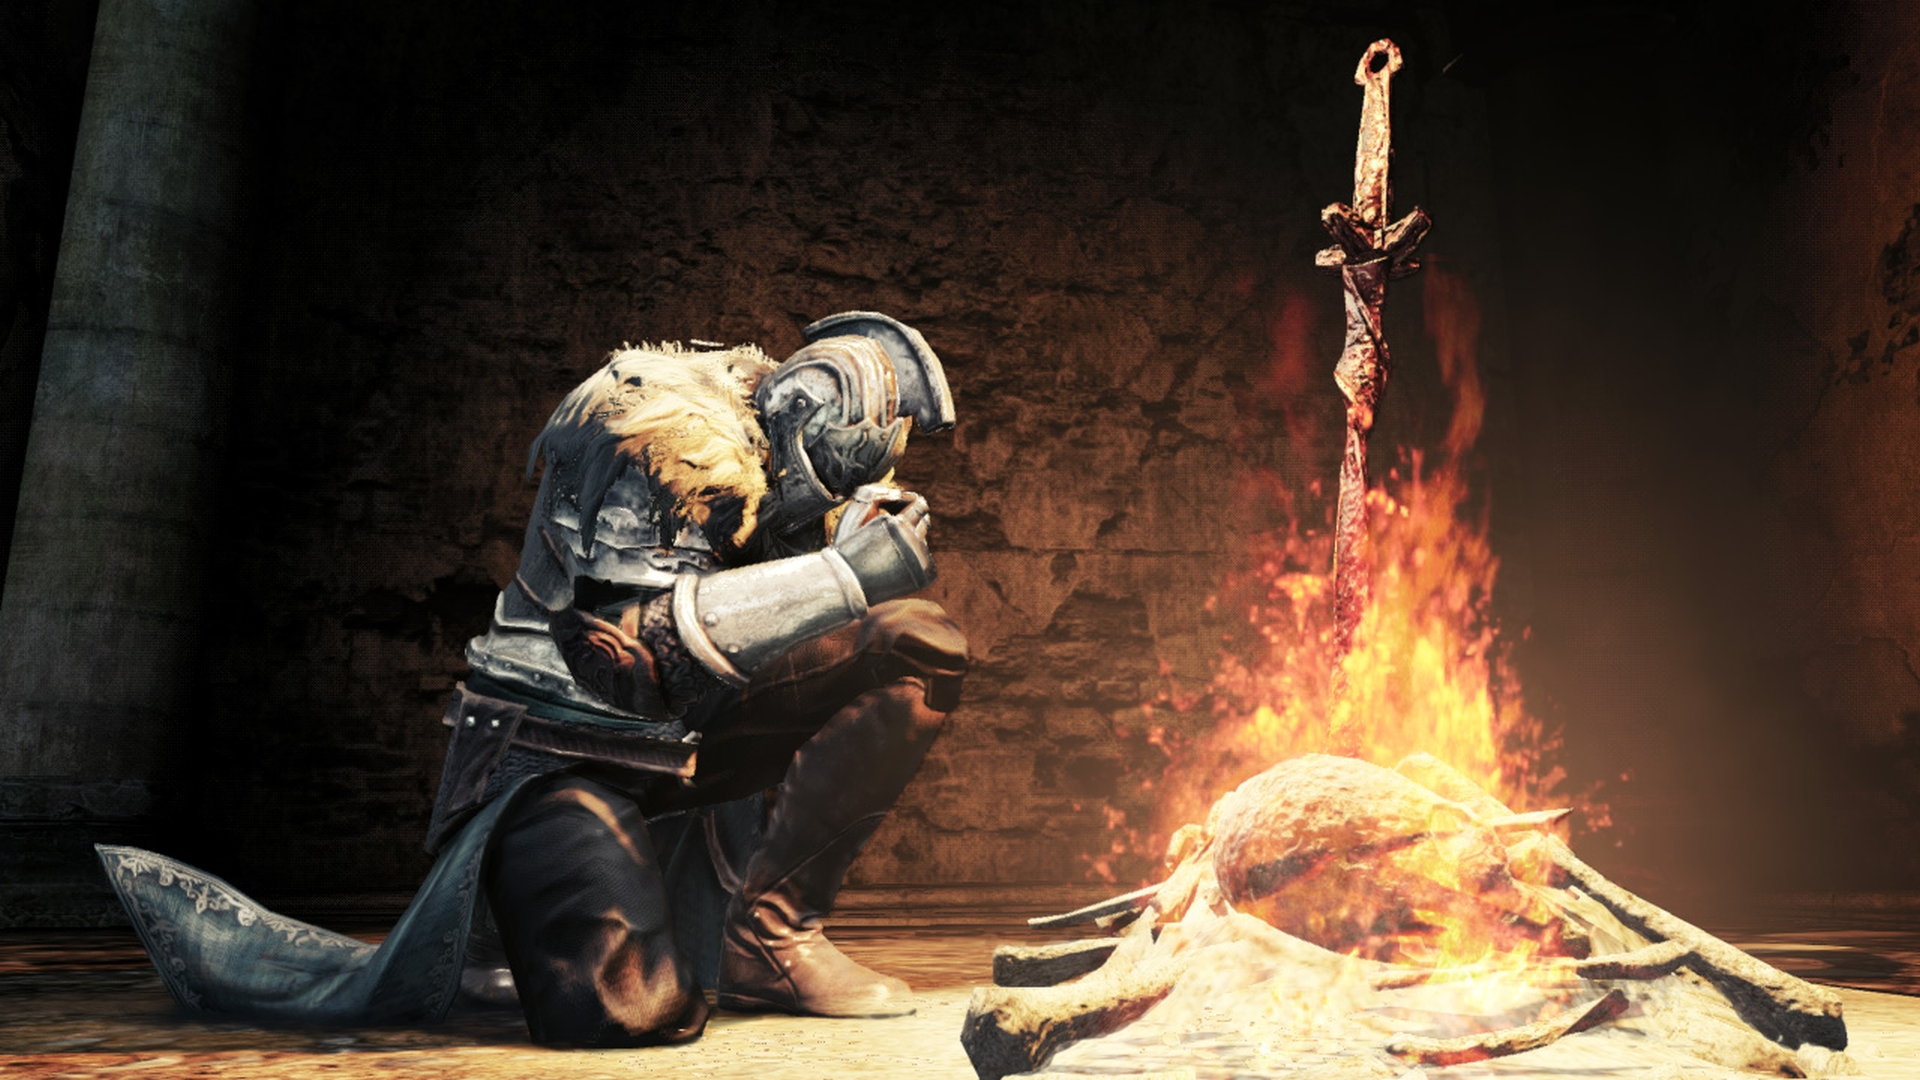 Dark-souls-bonfire-hd-1920%C3%971080-wallpaper-wpc9004038